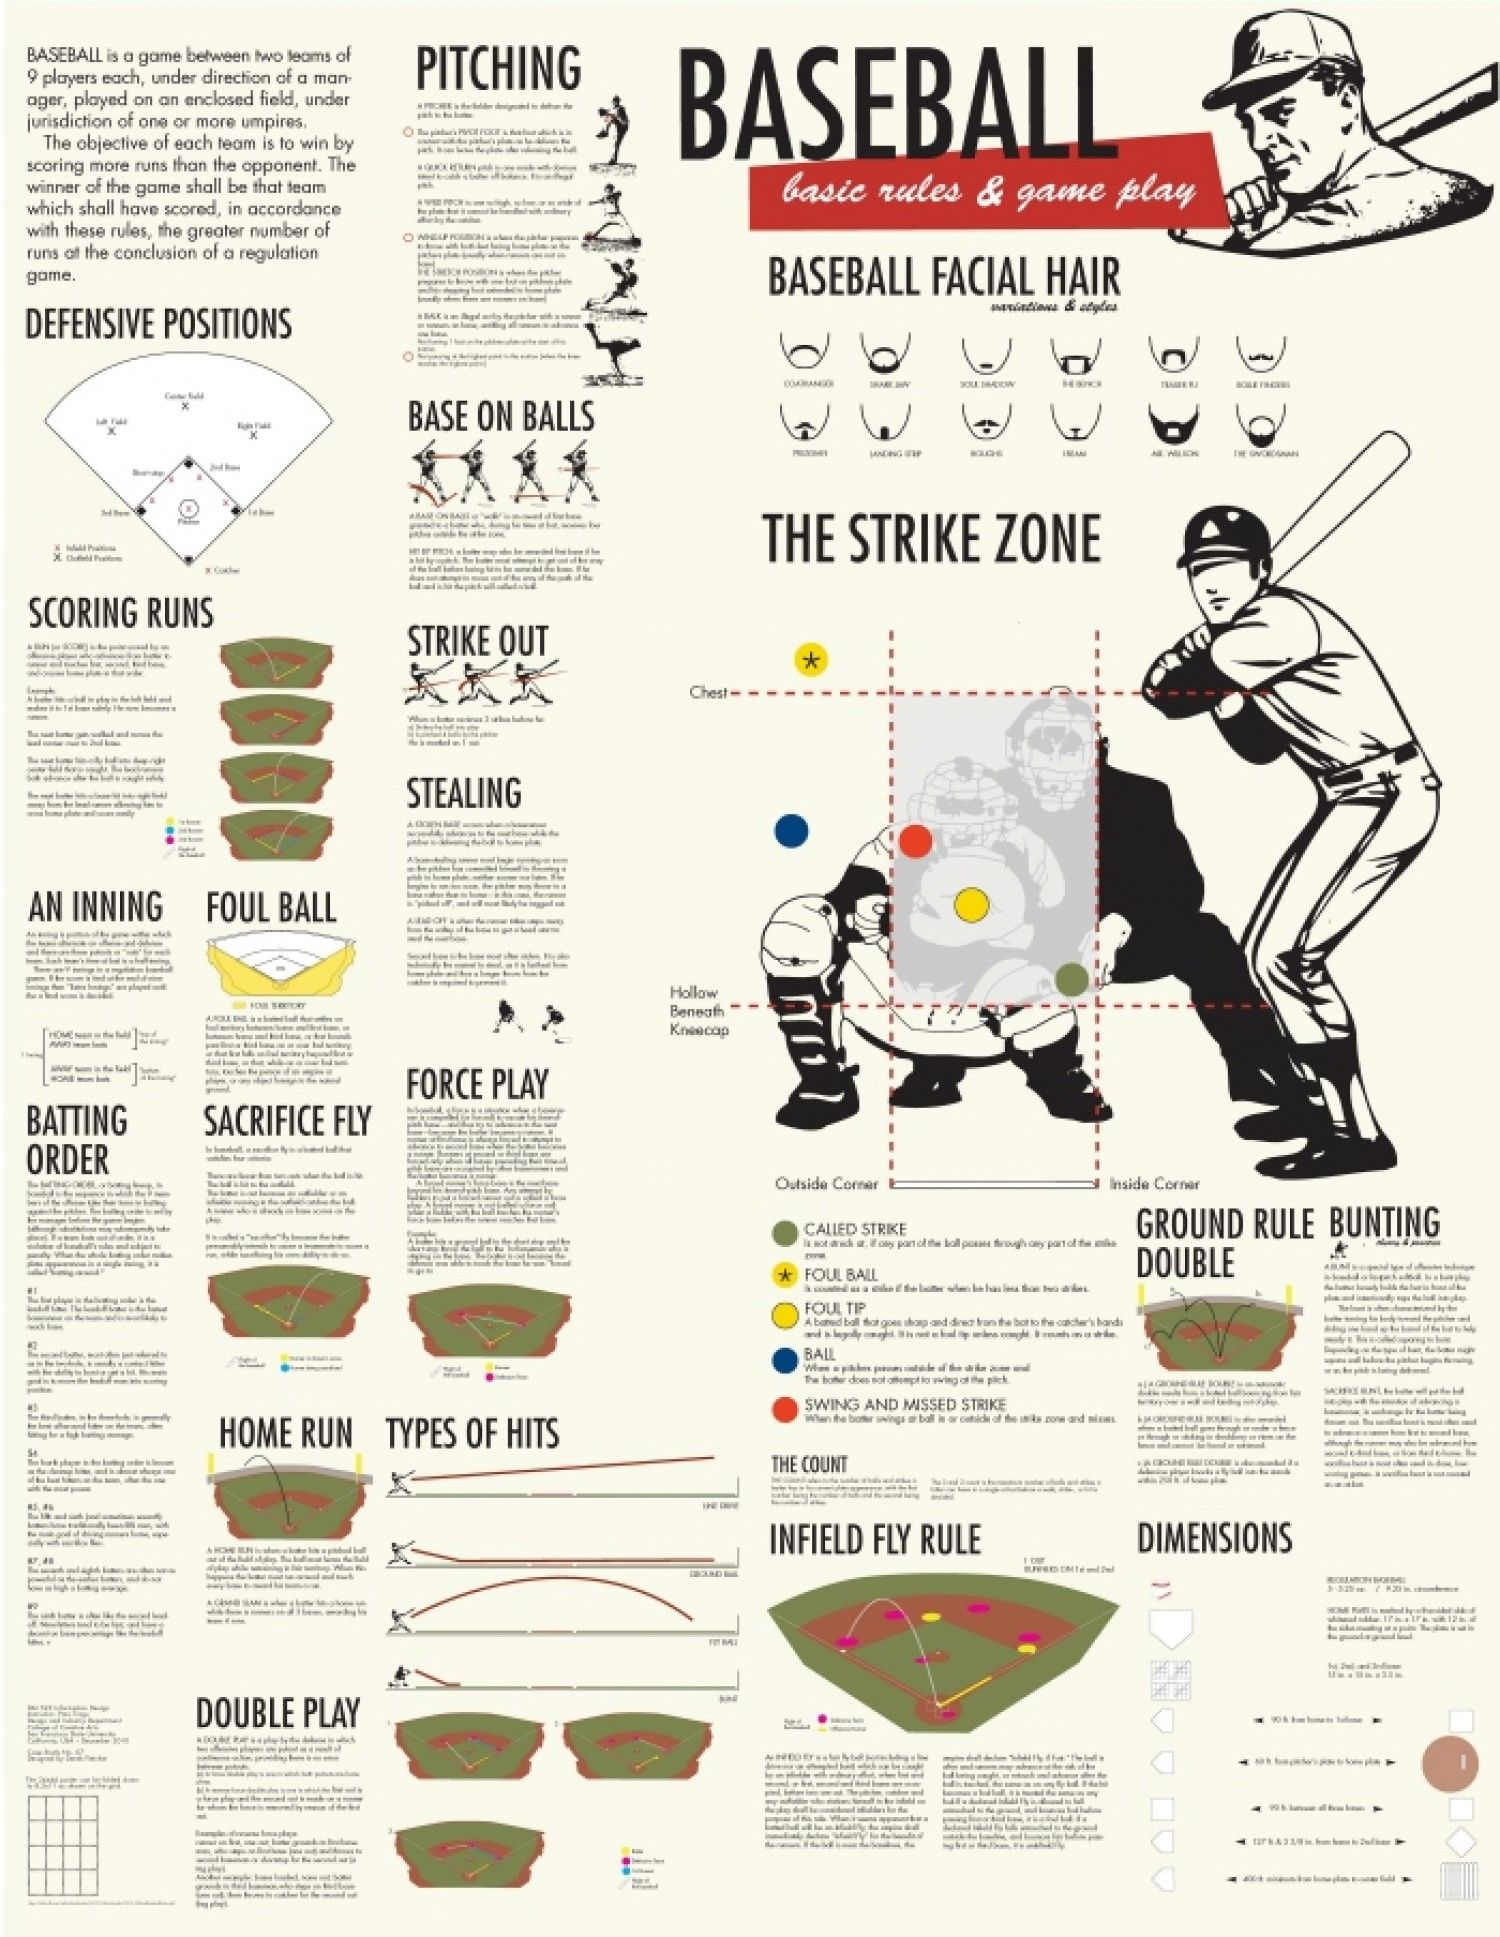 baseball basic rules and game play infographic sports pinterest